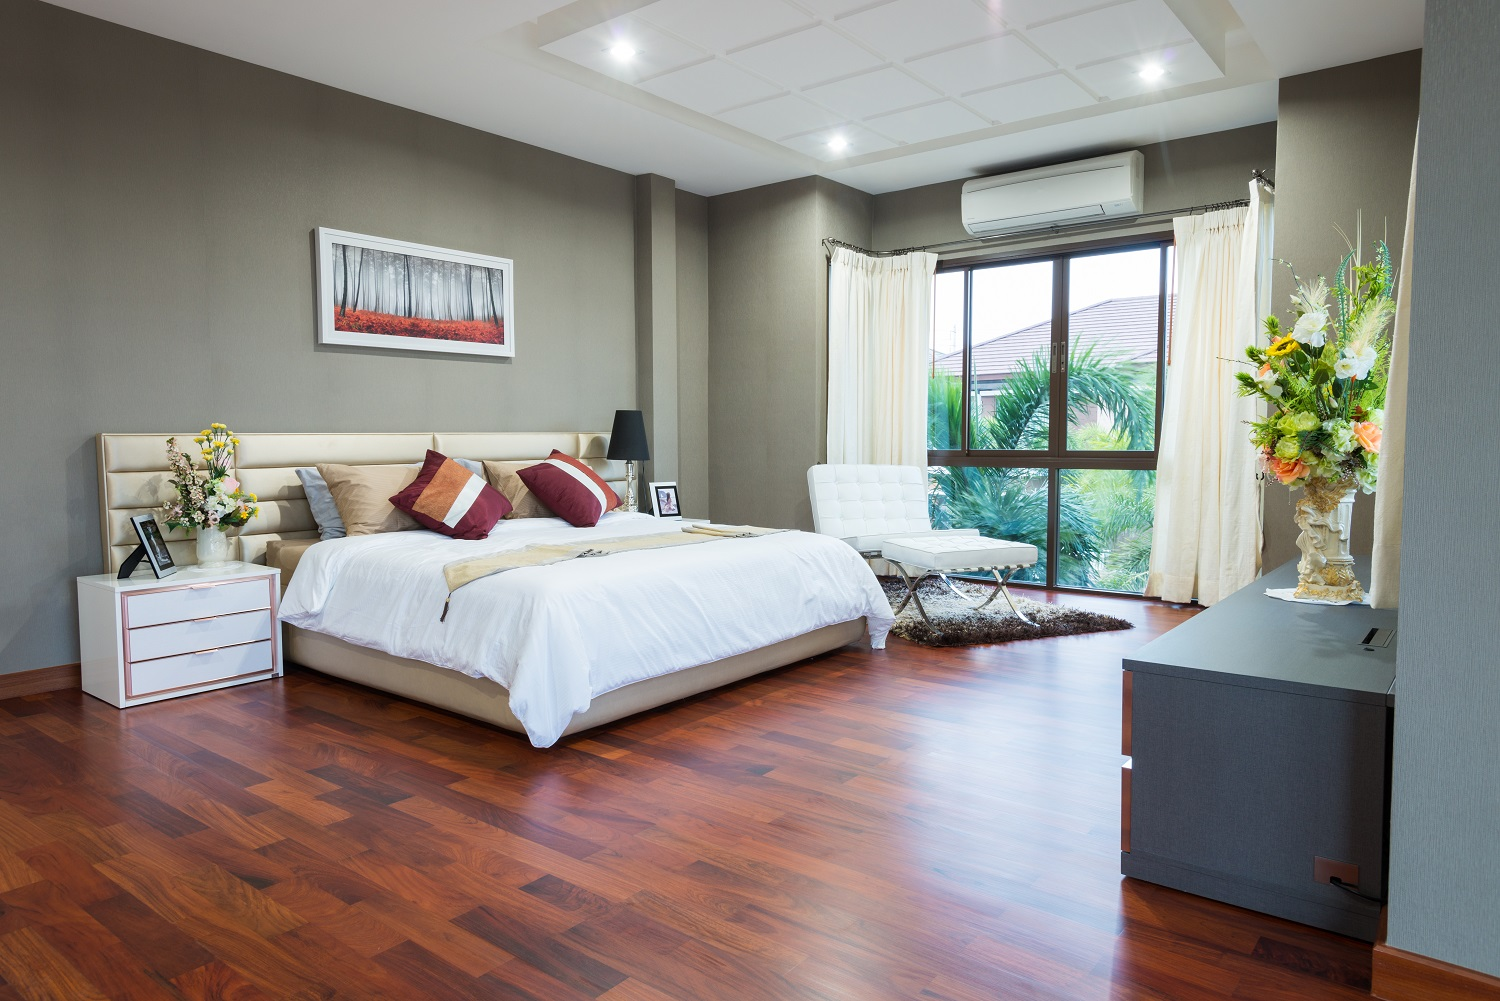 Interior painting tsp painting services denver house painters - Interior exterior painting services set ...